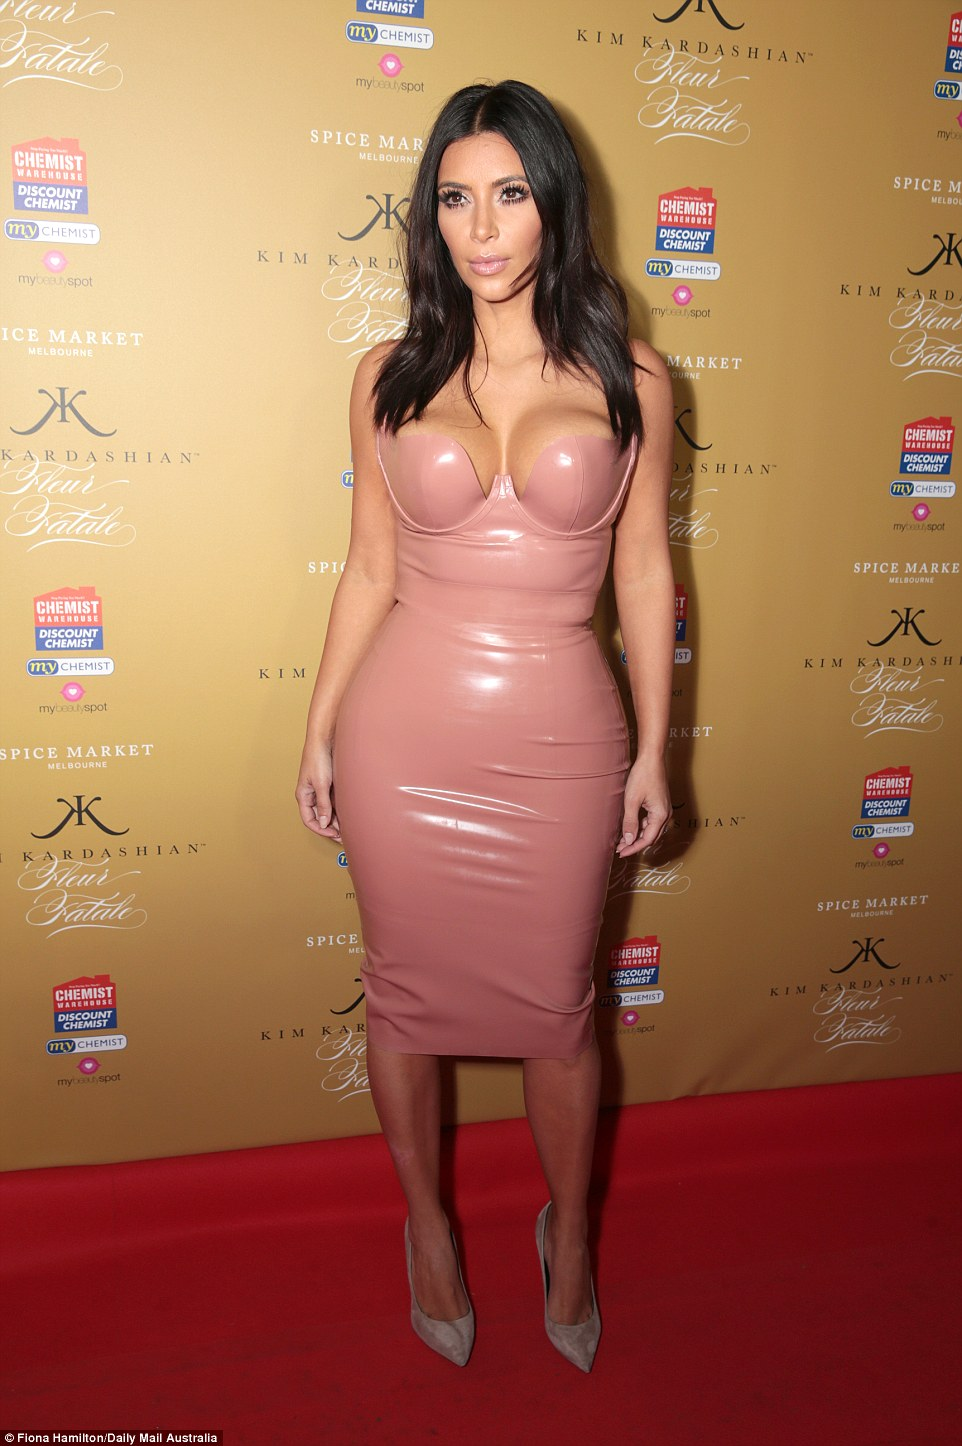 234377F600000578-2839141-Pretty_in_PVC_Kim_Kardashian_flaunted_her_famous_figure_at_the_l-39_1416309818911